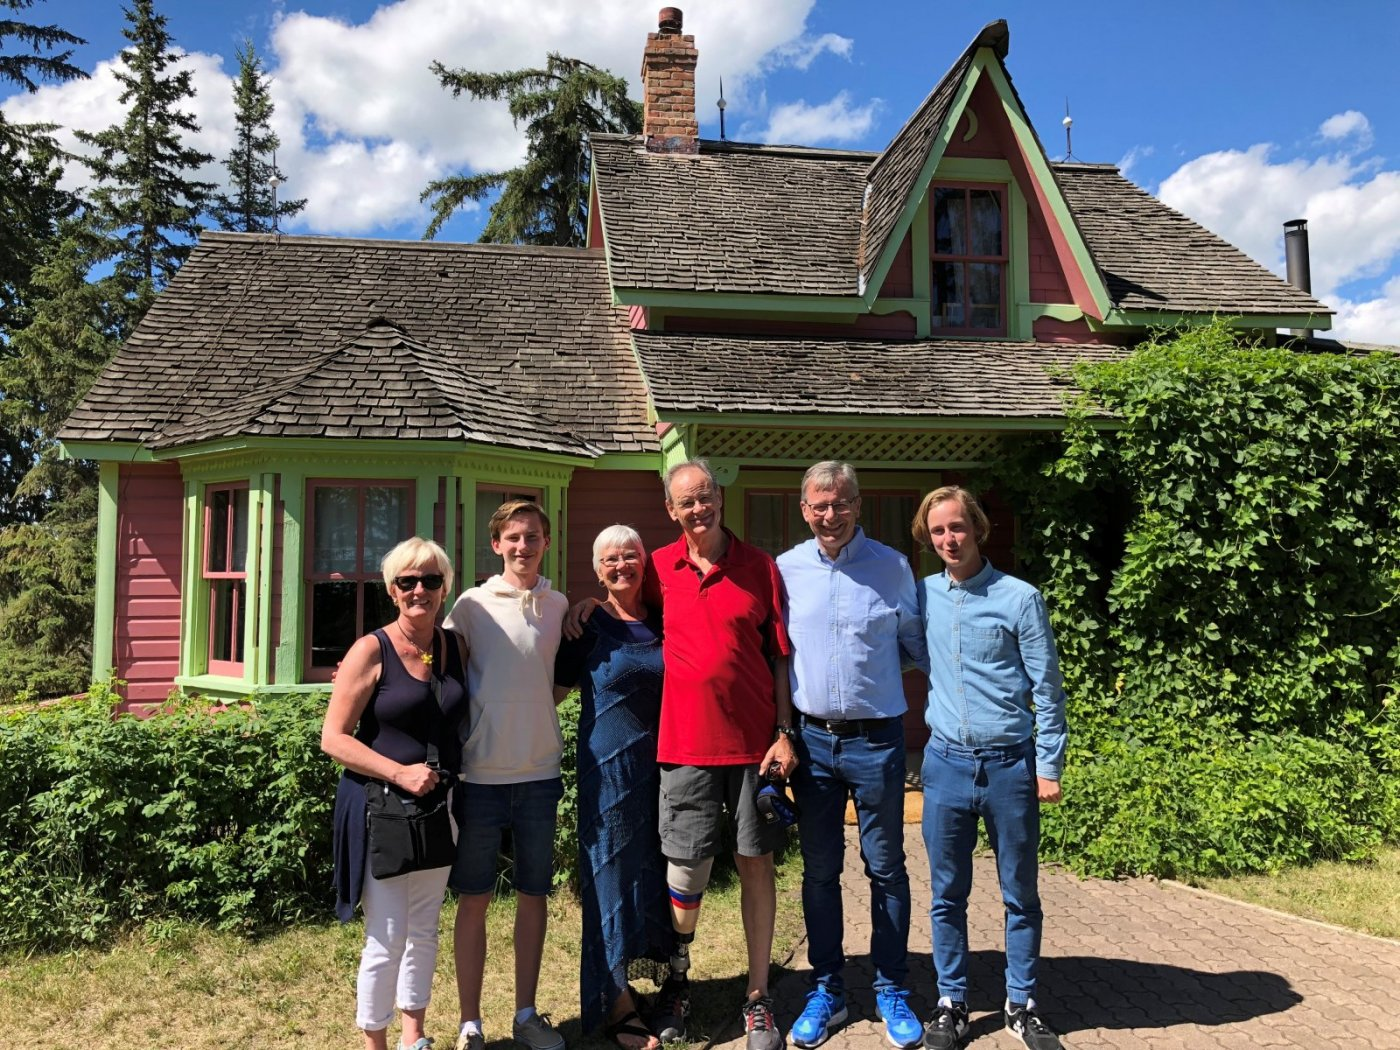 Rector and company paid a visit to Stephan G.'s house